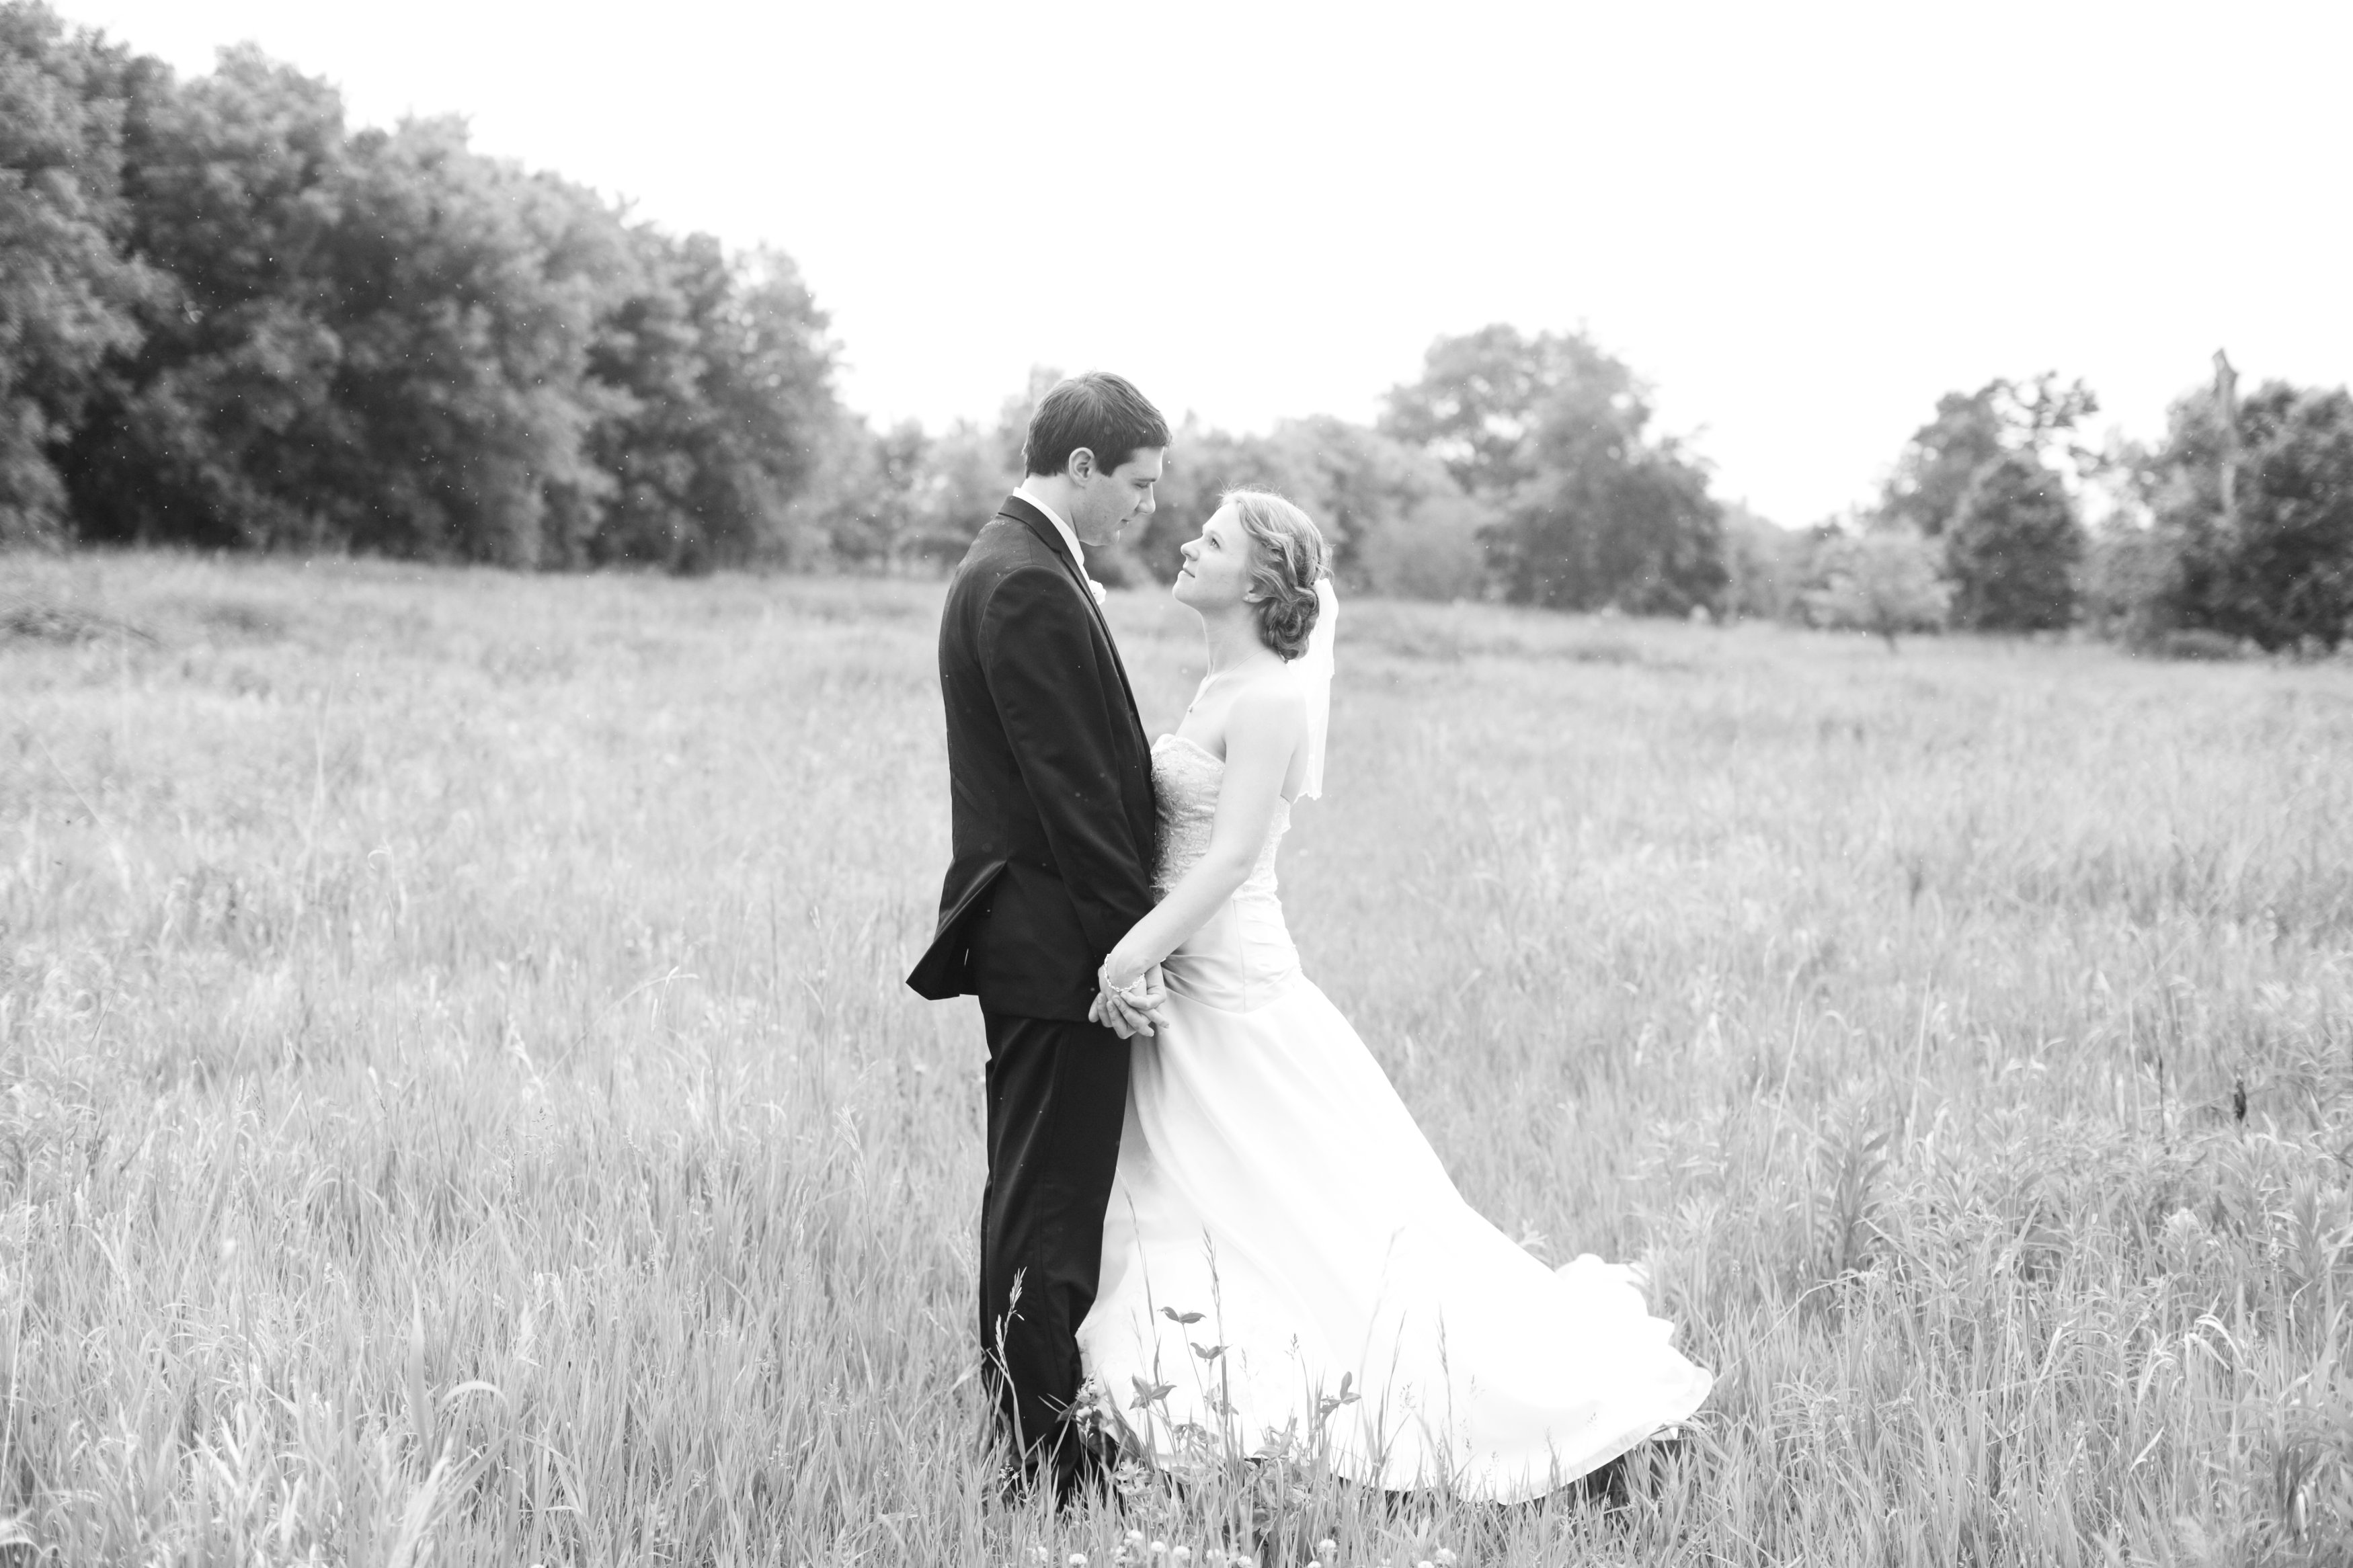 black and white photo of bride and groom in a field